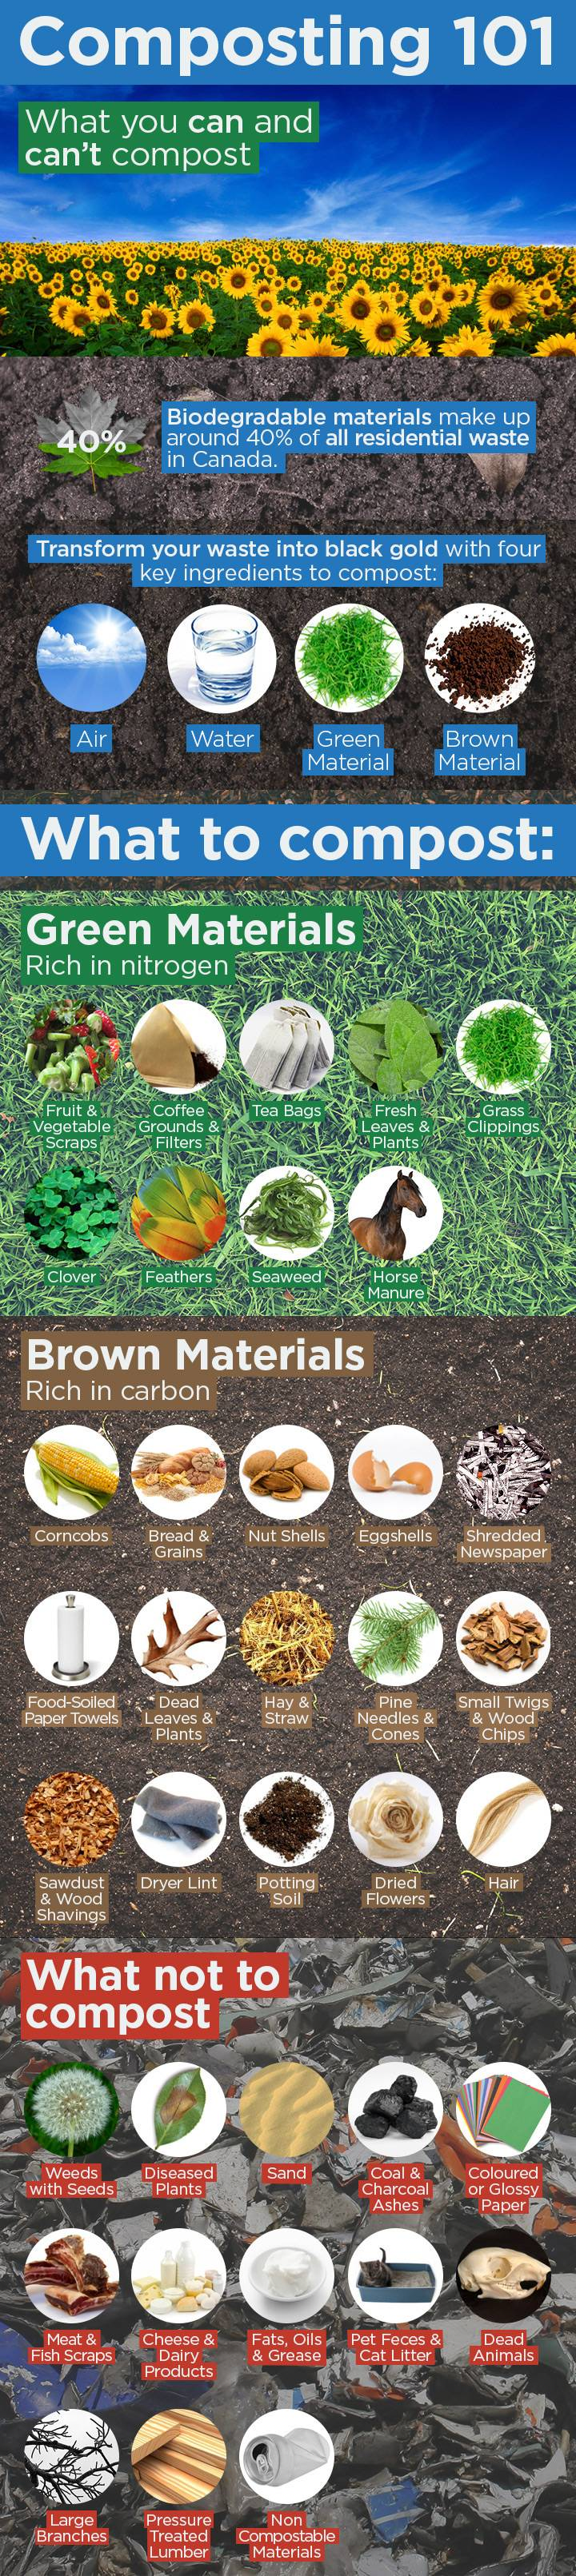 *infograpic by Global Newshttp://globalnews.ca/news/1771011/countertop-composting-catches-on-with-apartment-dwellers/